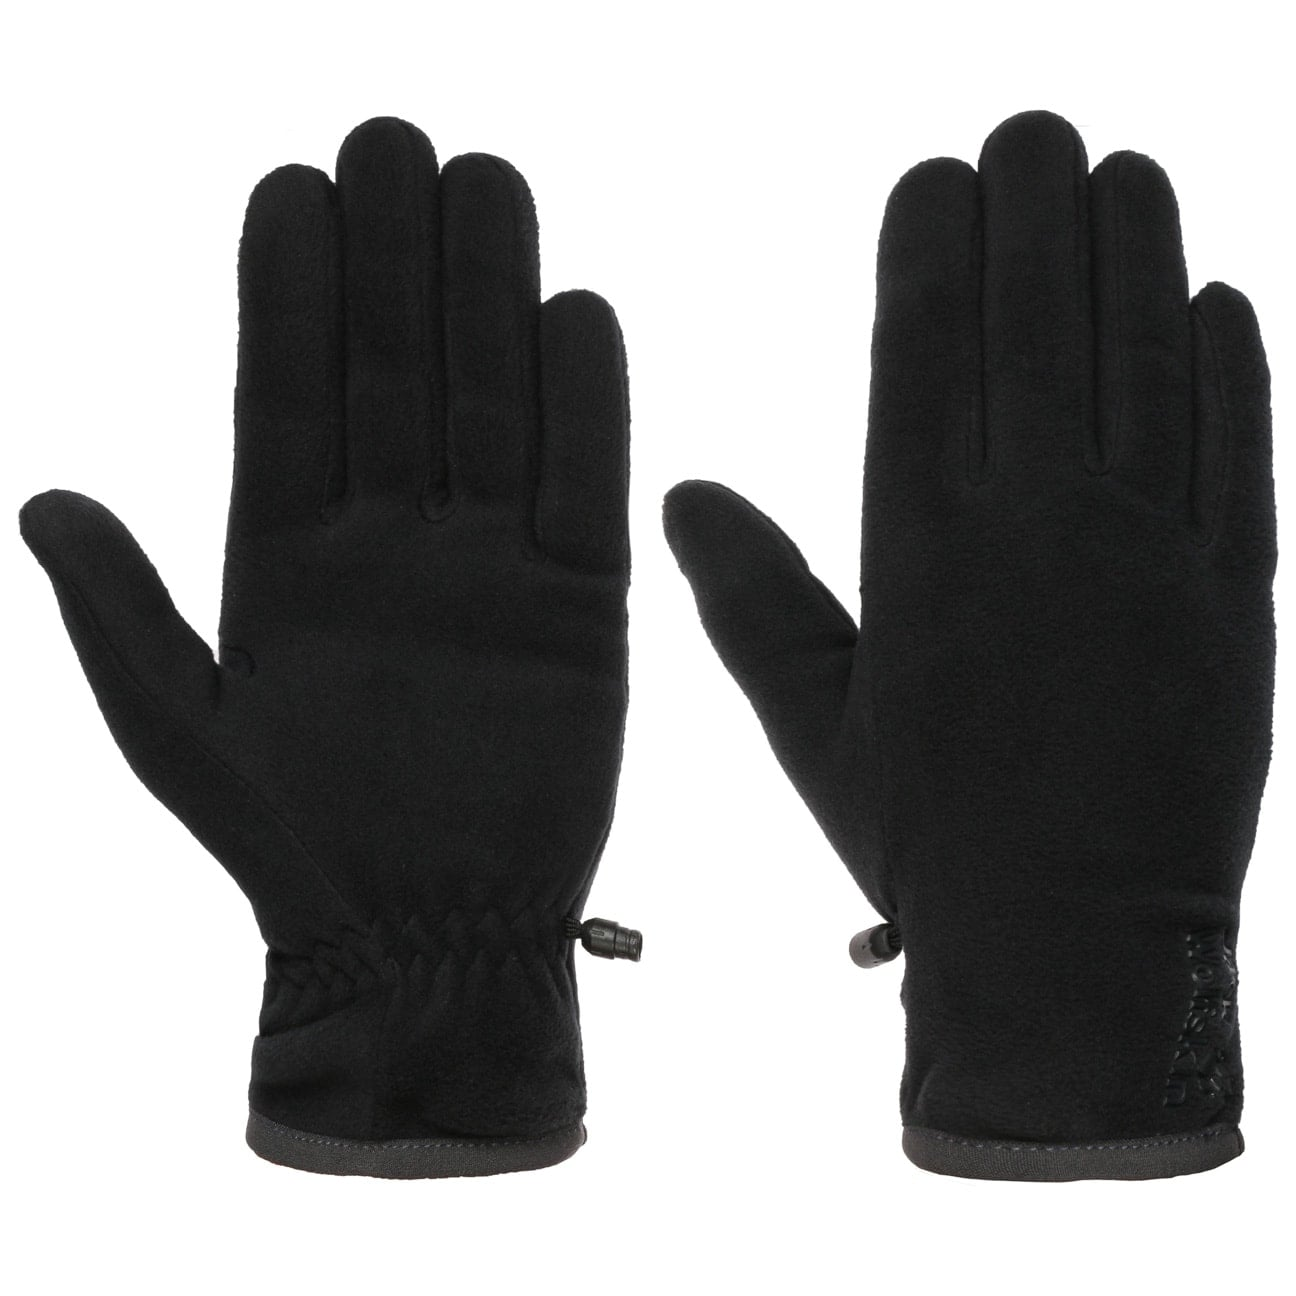 Nanuk Ecosphere Gloves by Jack Wolfskin  men?s gloves